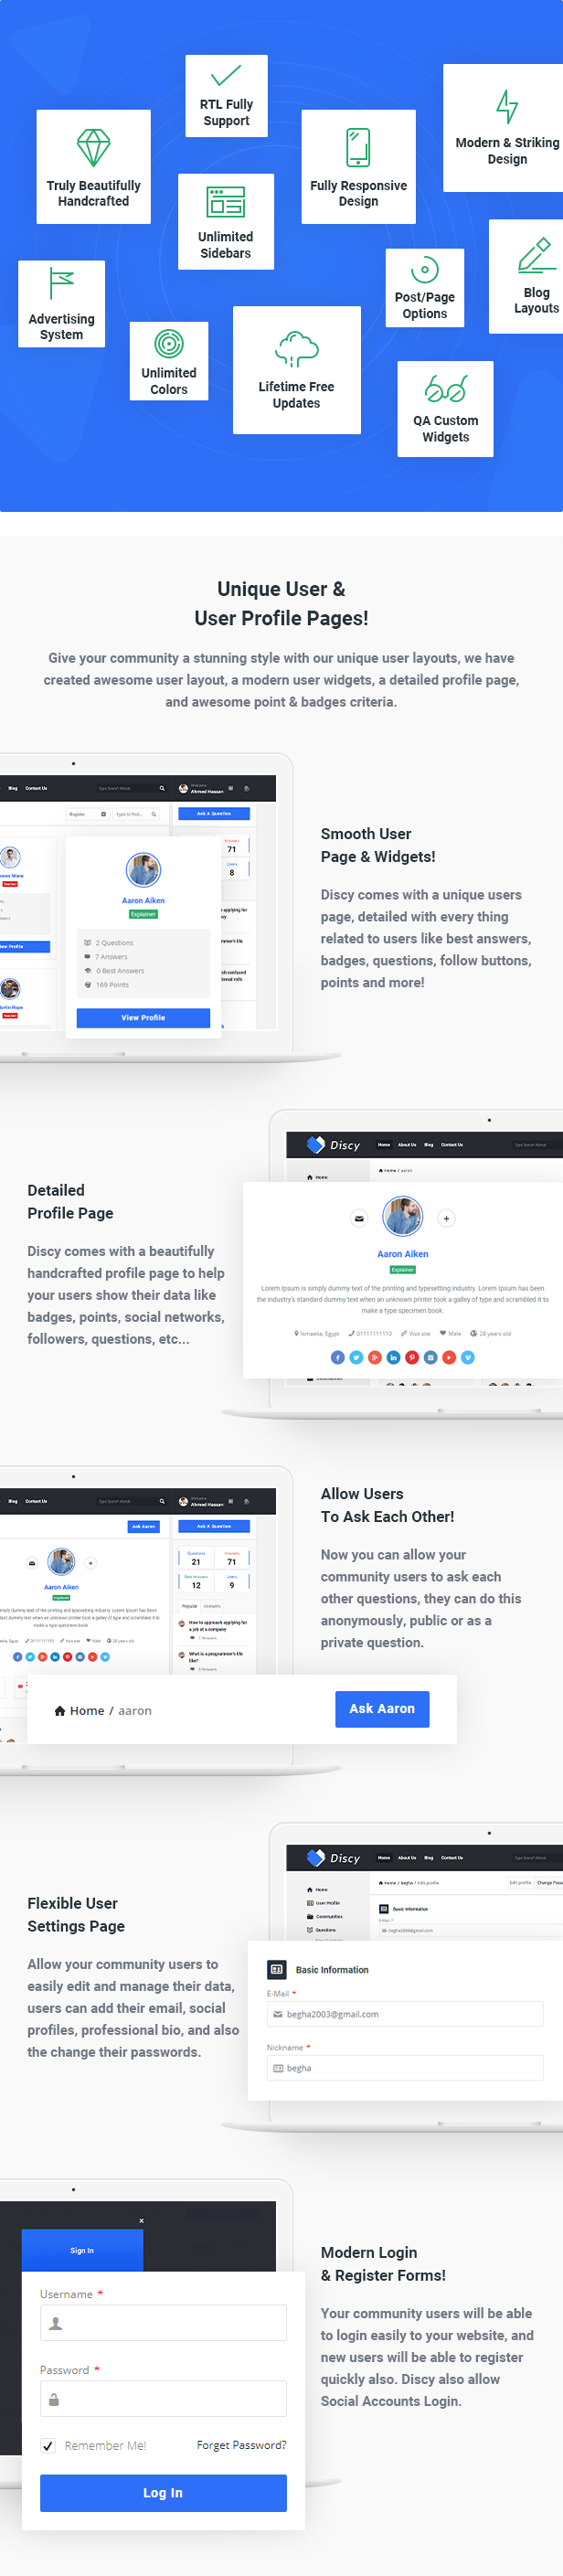 discy social questions and answers wordpress theme by 2codethemes